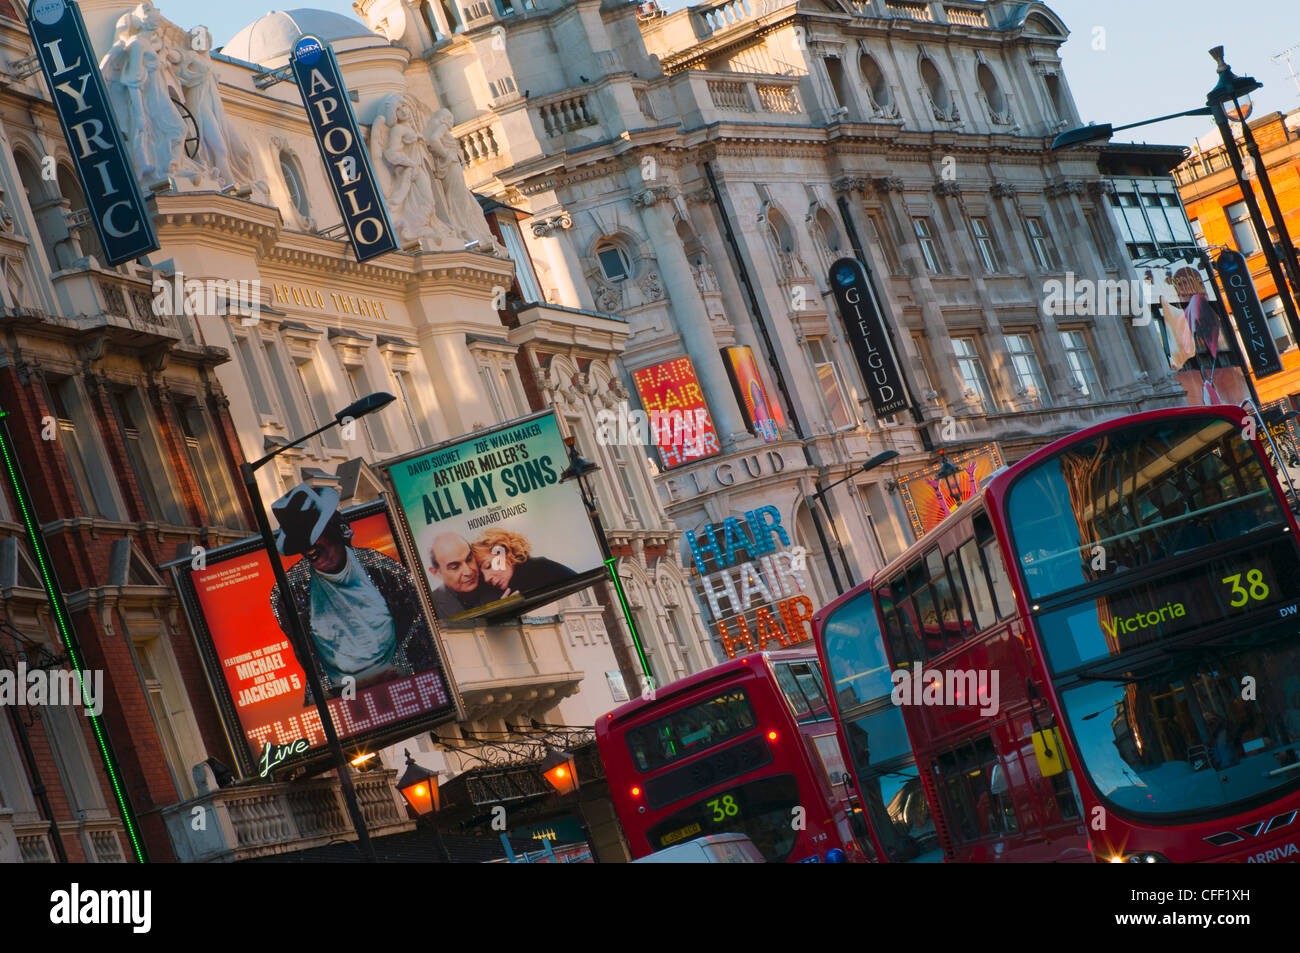 Theatreland, Shaftesbury Avenue, London, England, United Kingdom, Europe - Stock Image